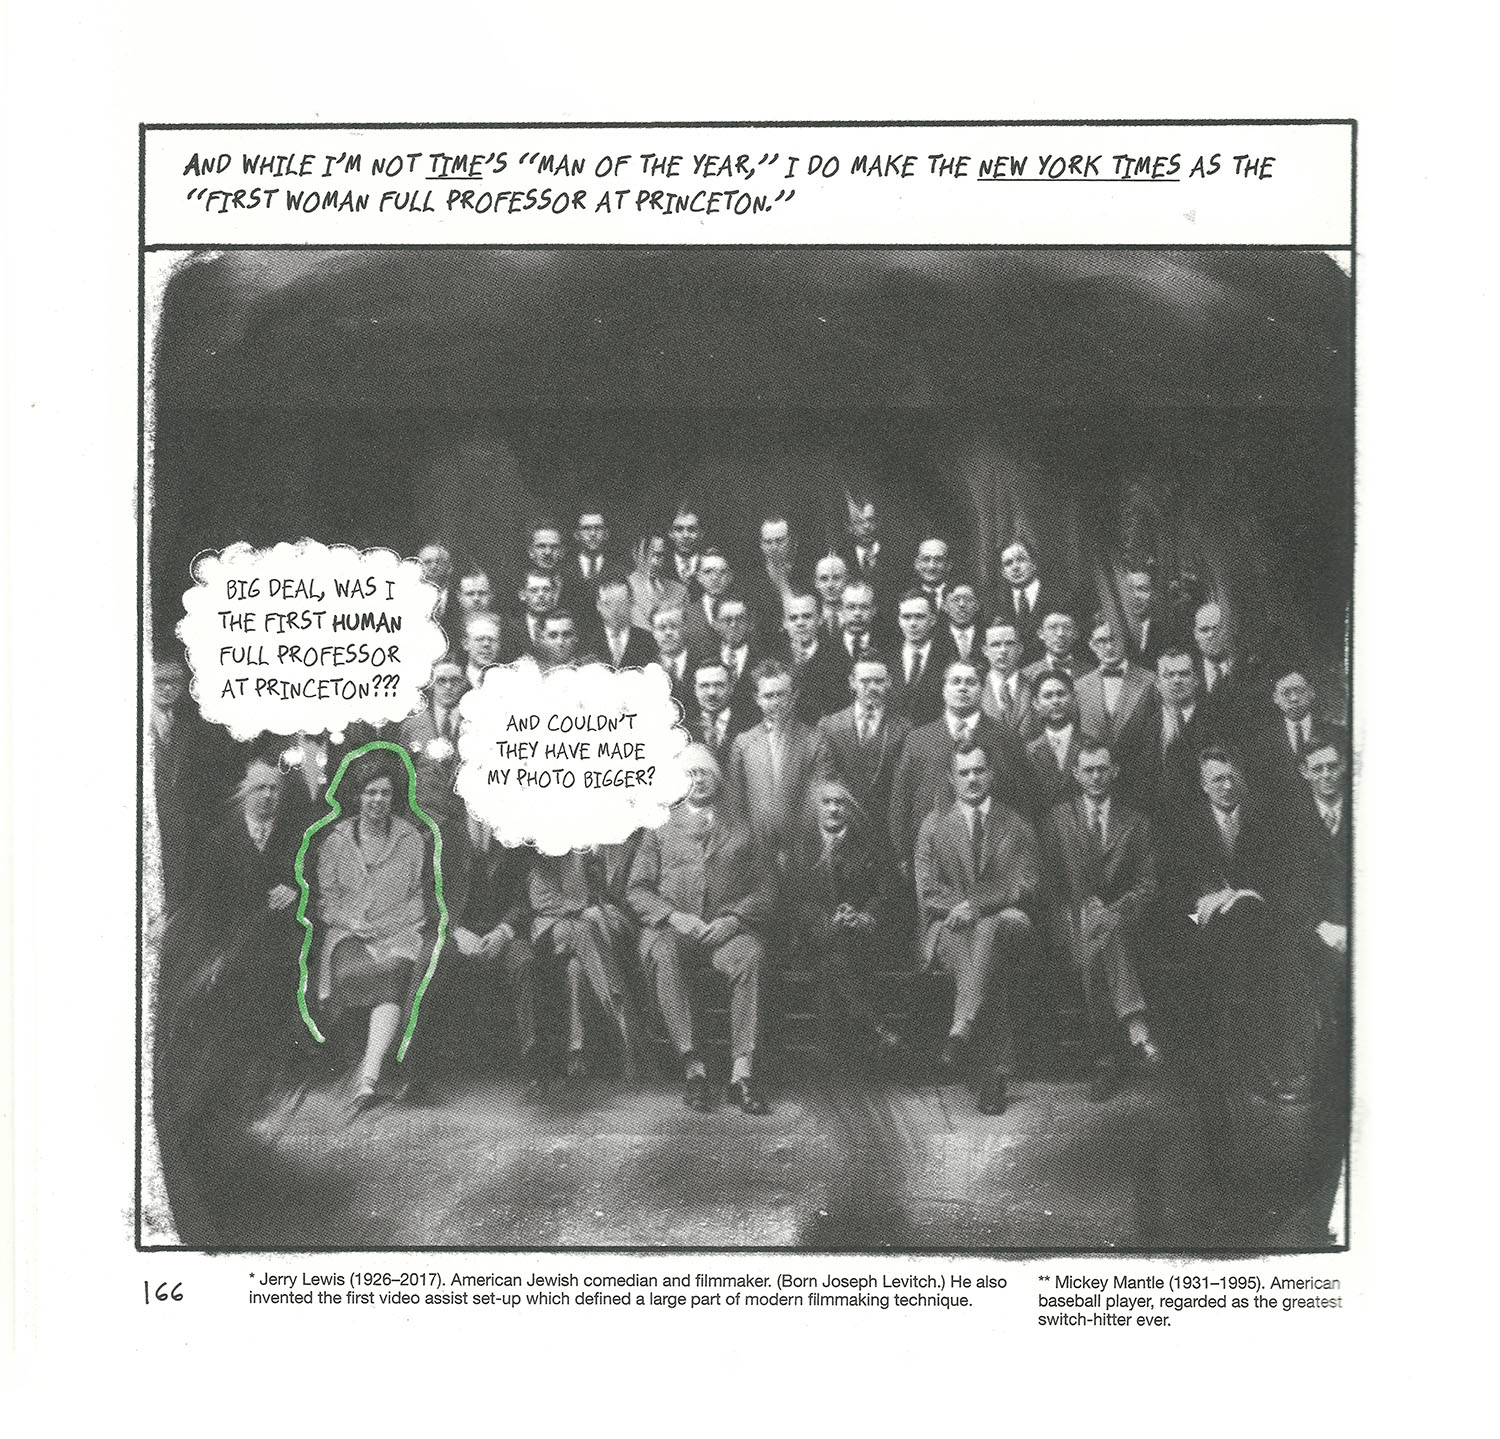 Photo of Princeton faculty, with Arendt outlined in green.